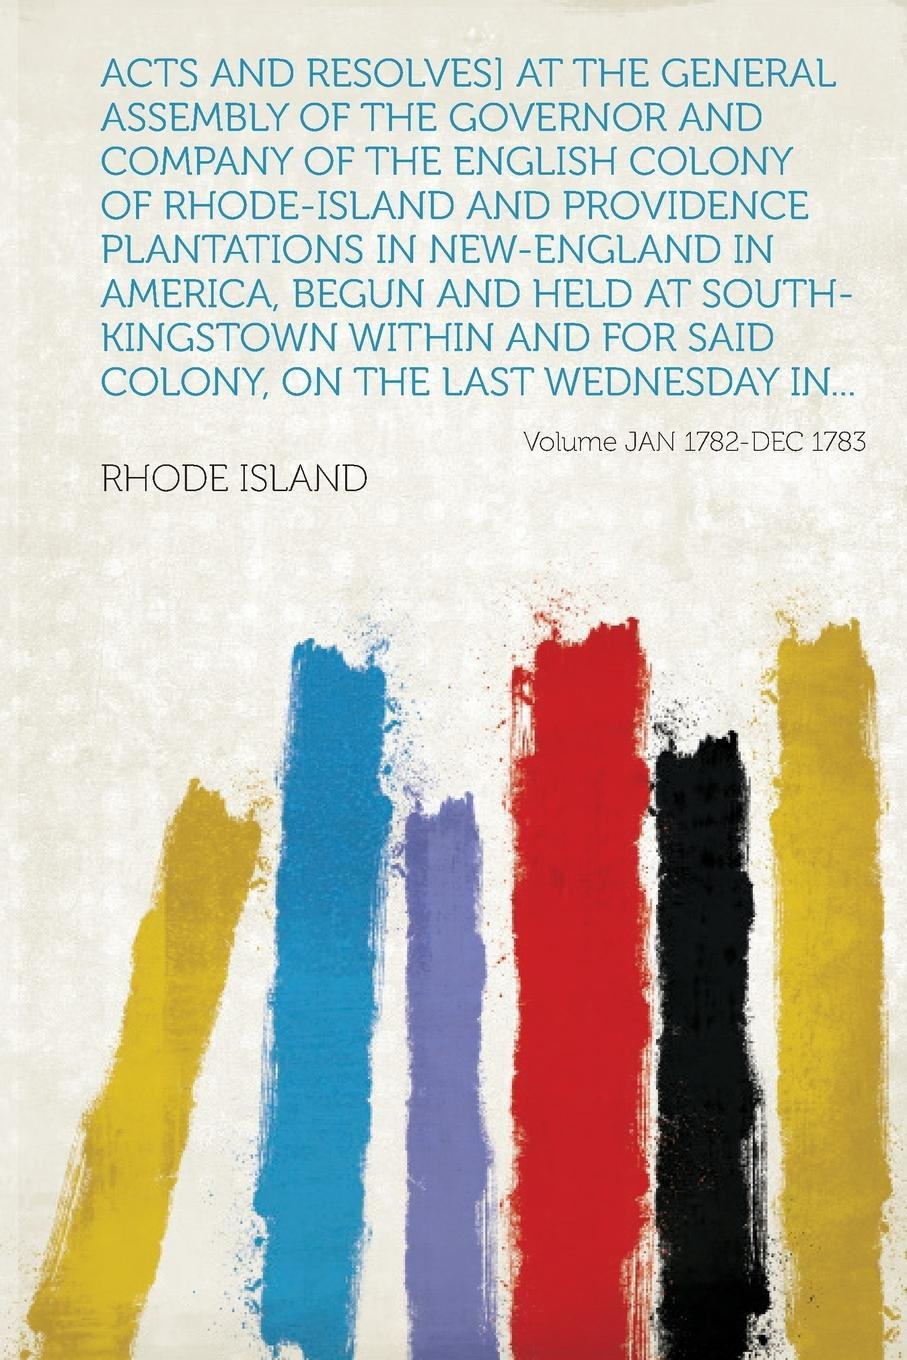 Acts and Resolves] at the General Assembly of the Governor and Company of the English Colony of Rhode-Island and Providence Plantations in New-England pdf epub